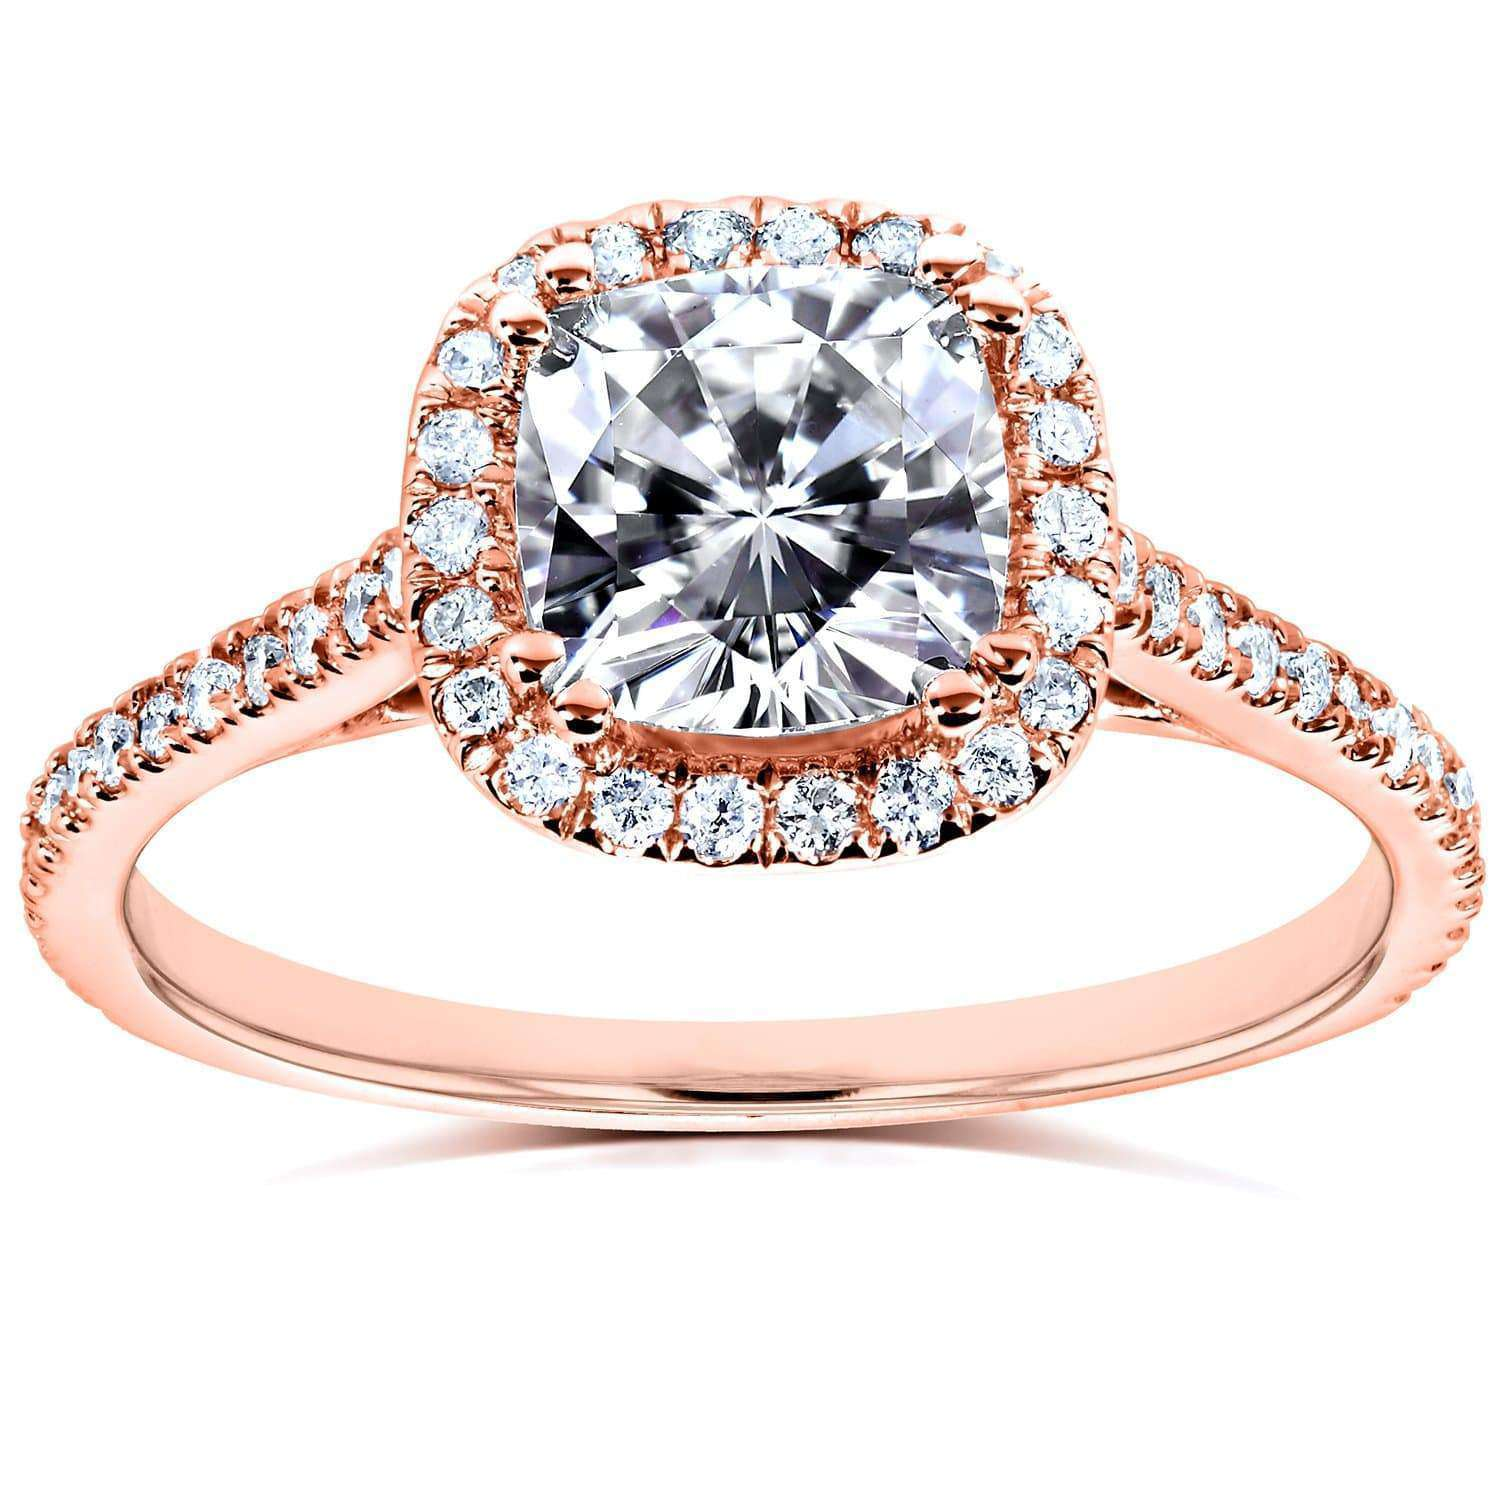 Compare Near-Colorless (F-G) Cushion Moissanite & Diamond Engagement Ring 1 1/3 CTW in 14k Rose Gold - 6.5